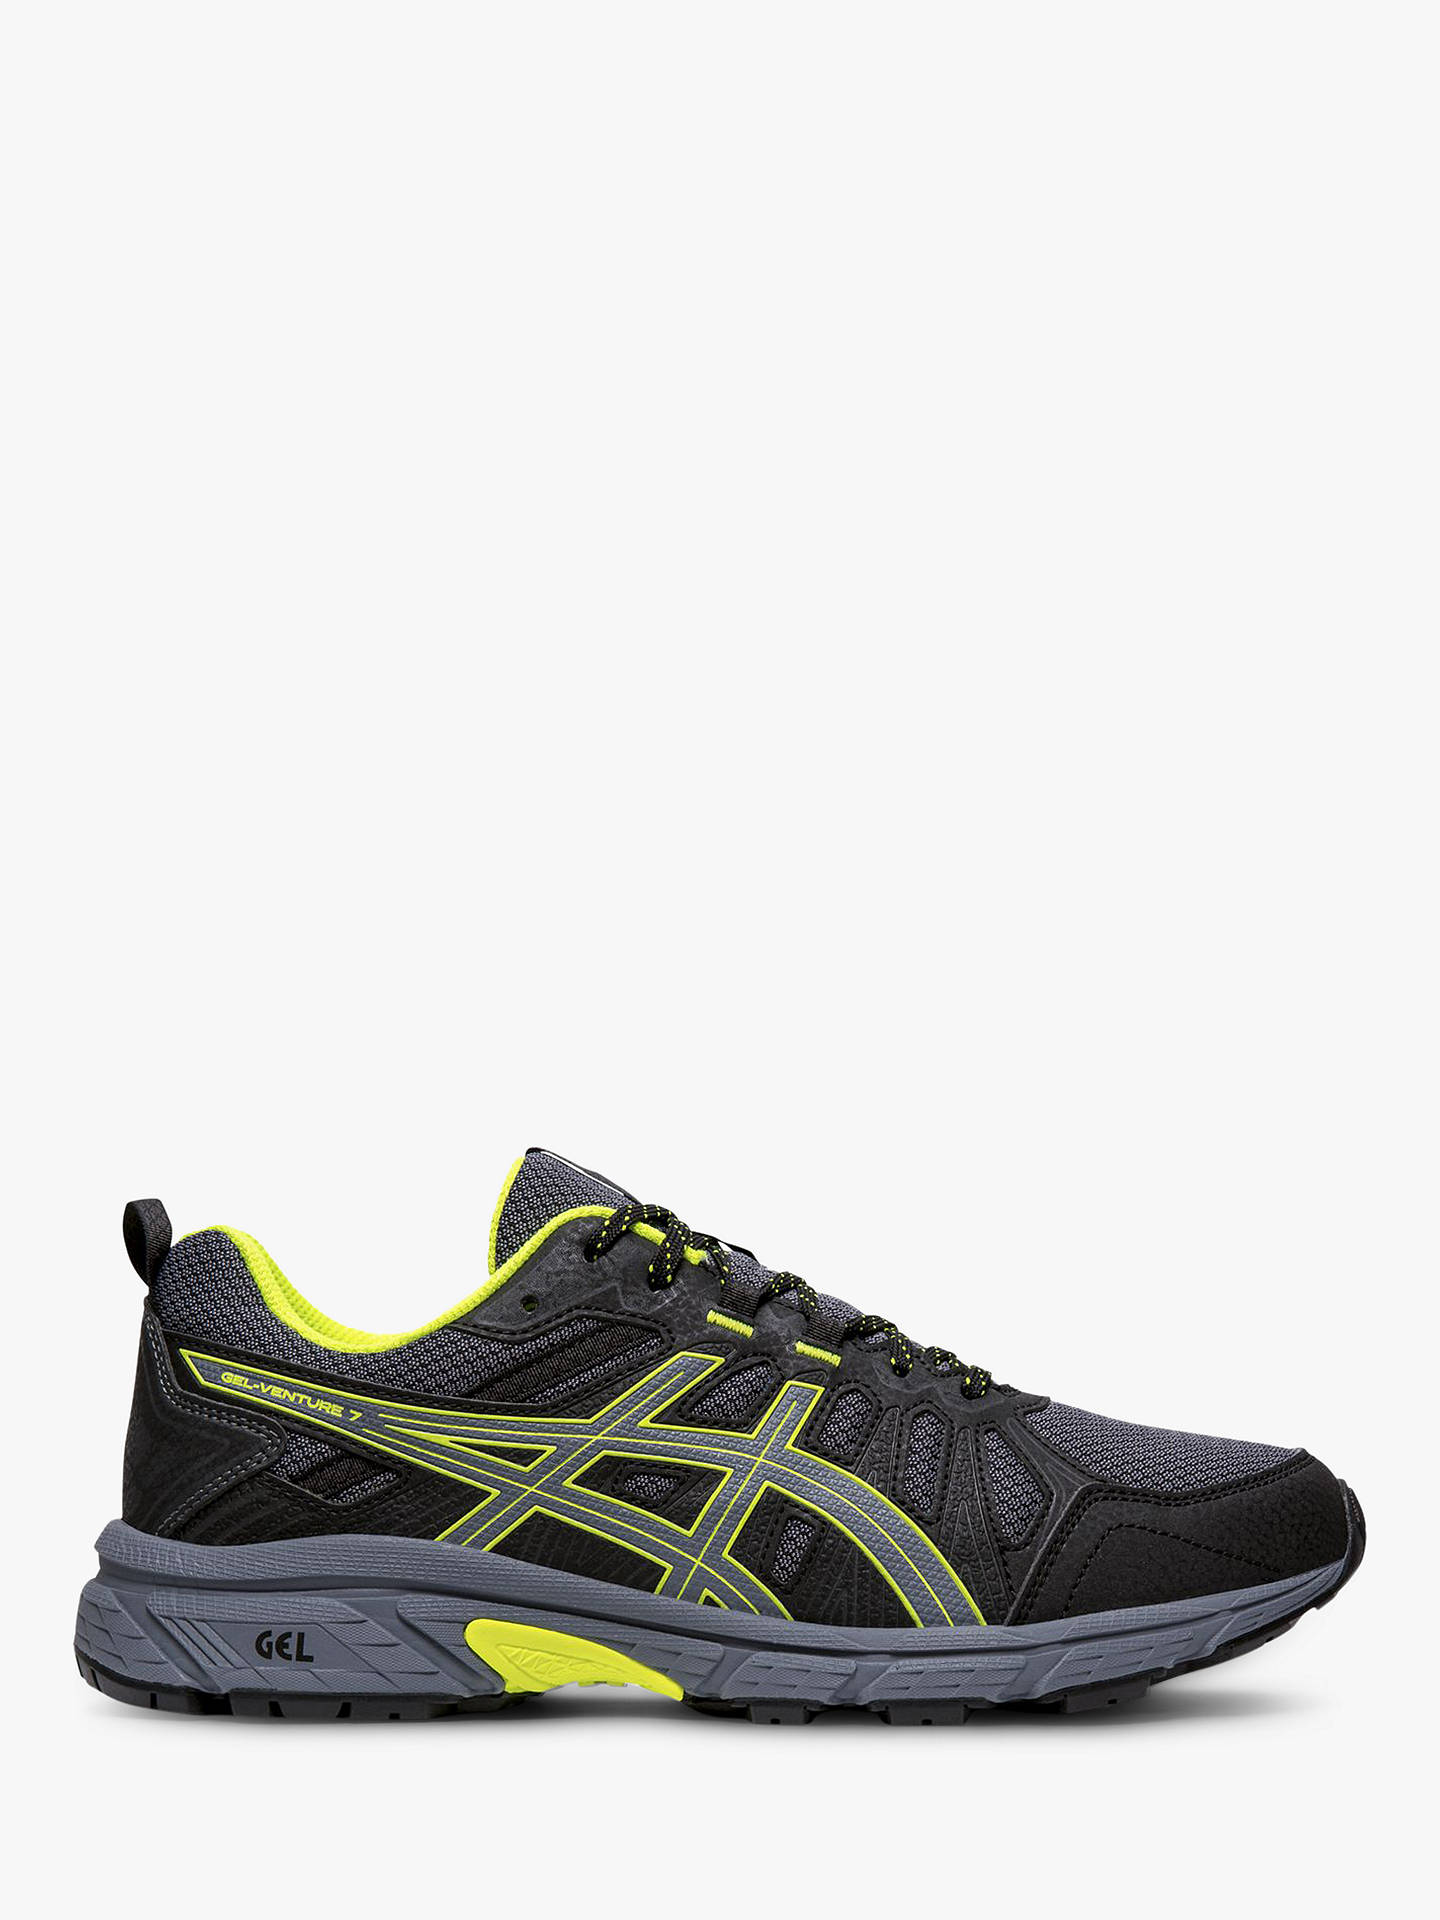 2e3eb909e74e Buy ASICS GEL-VENTURE 7 Men's Trail Running Shoes, Metropolis/Yellow, 7 ...